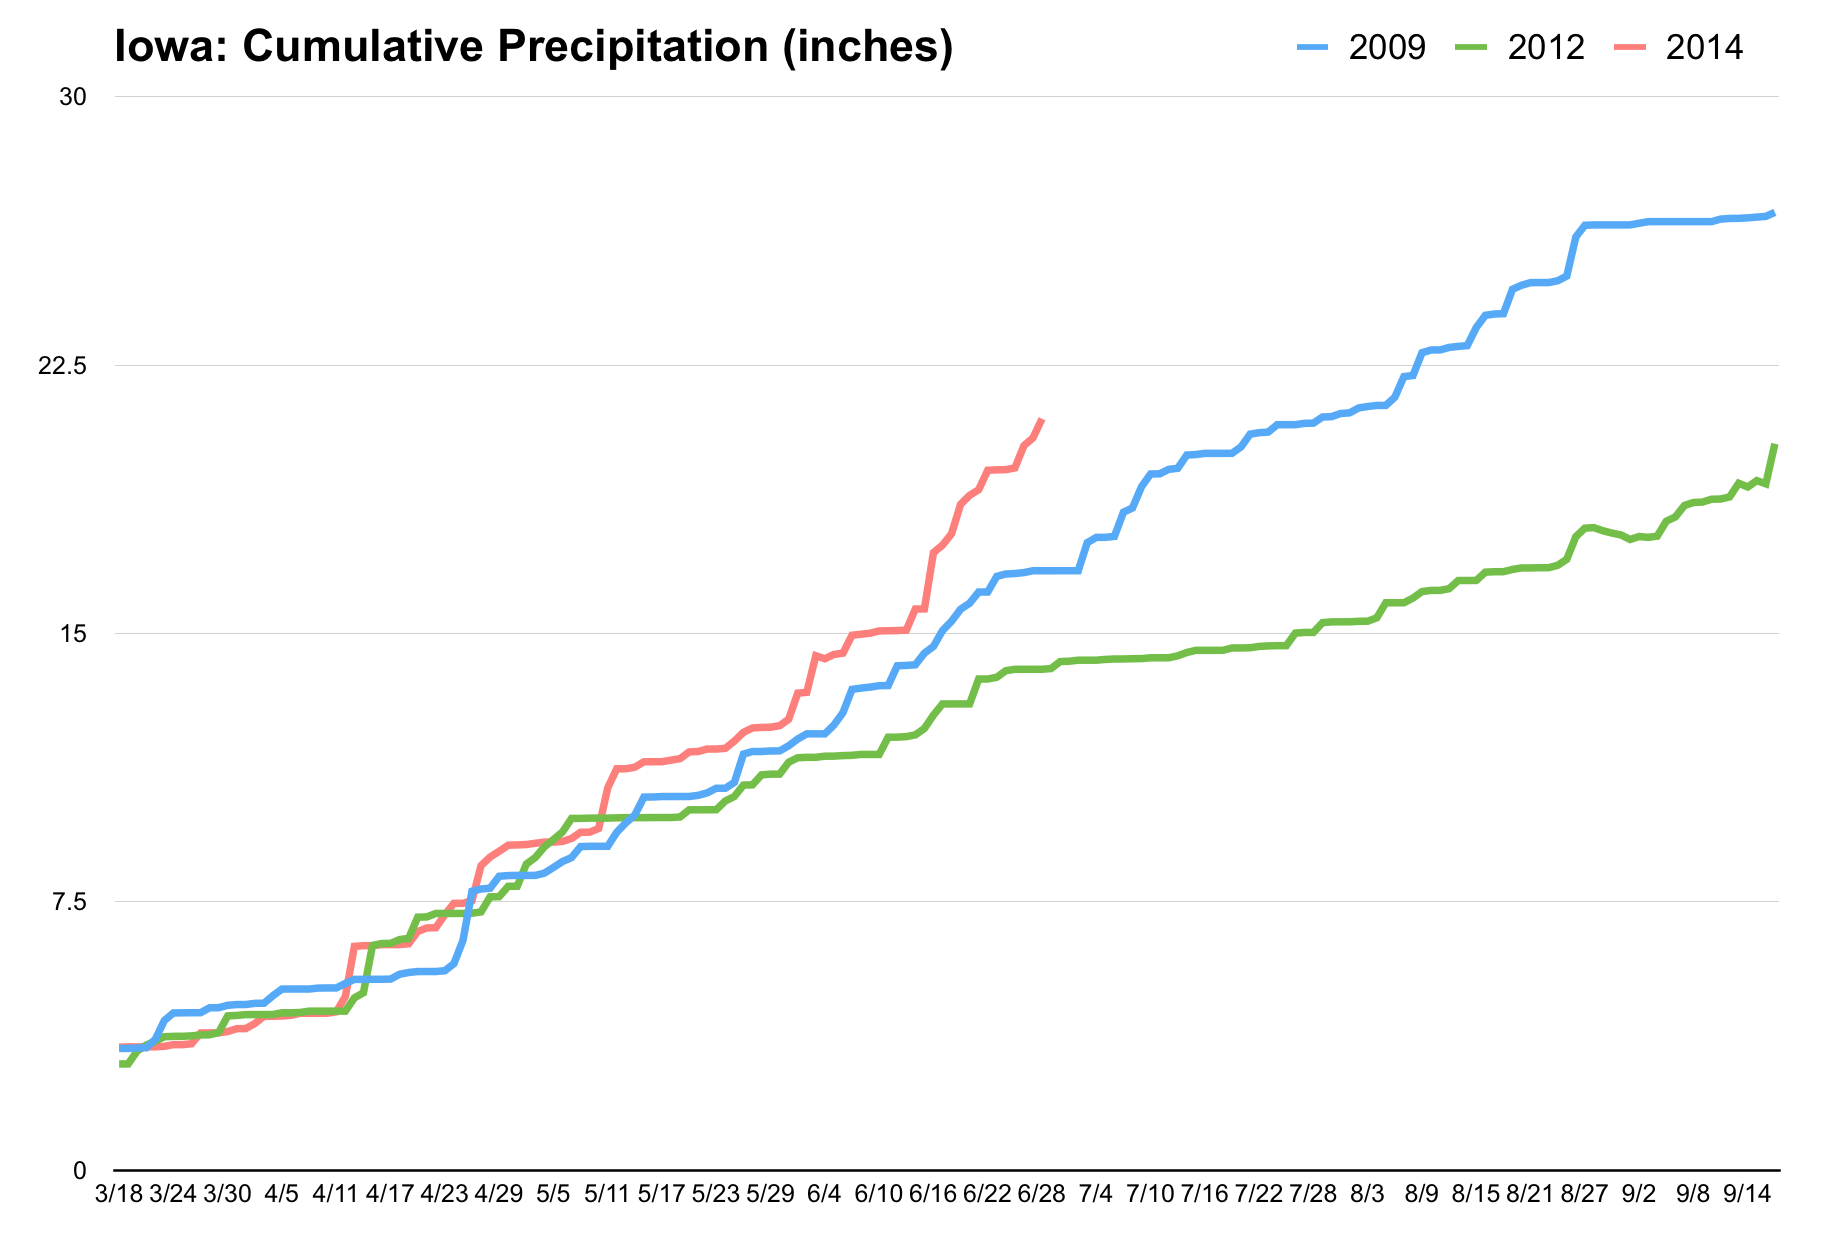 Iowa: Cumulative Precipitation